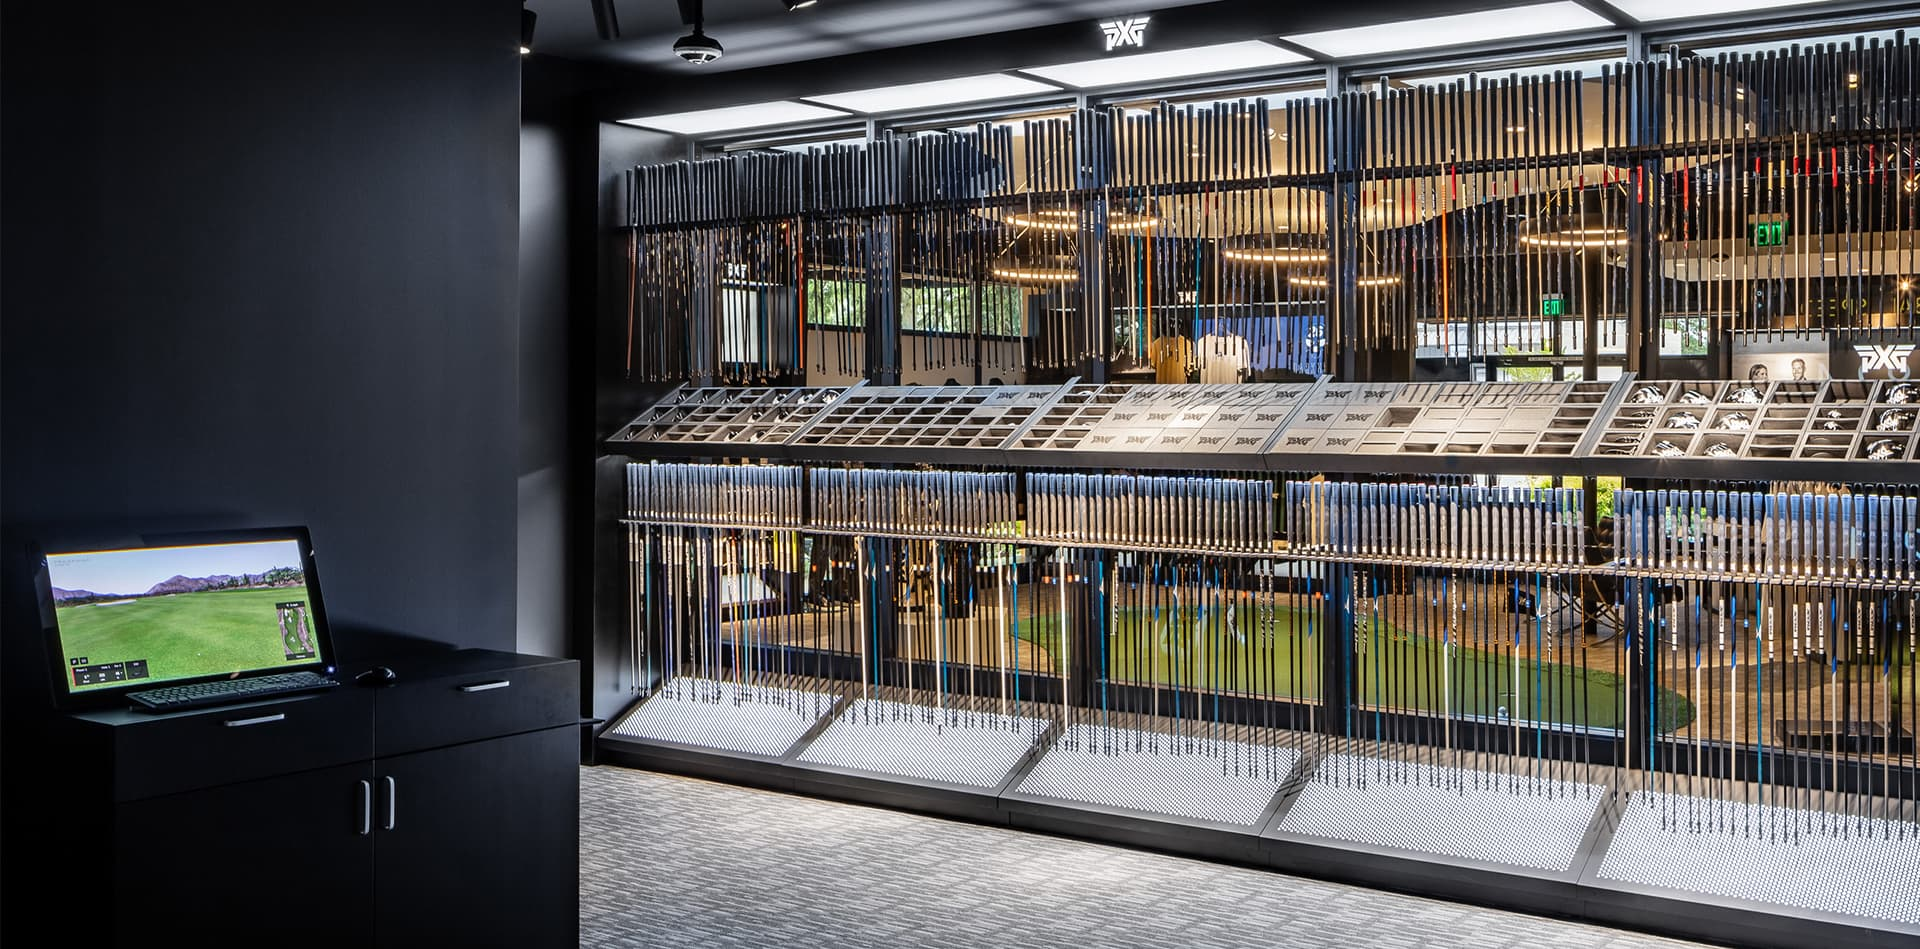 PXG Indoor Fitting Bay with Selection of Shafts.